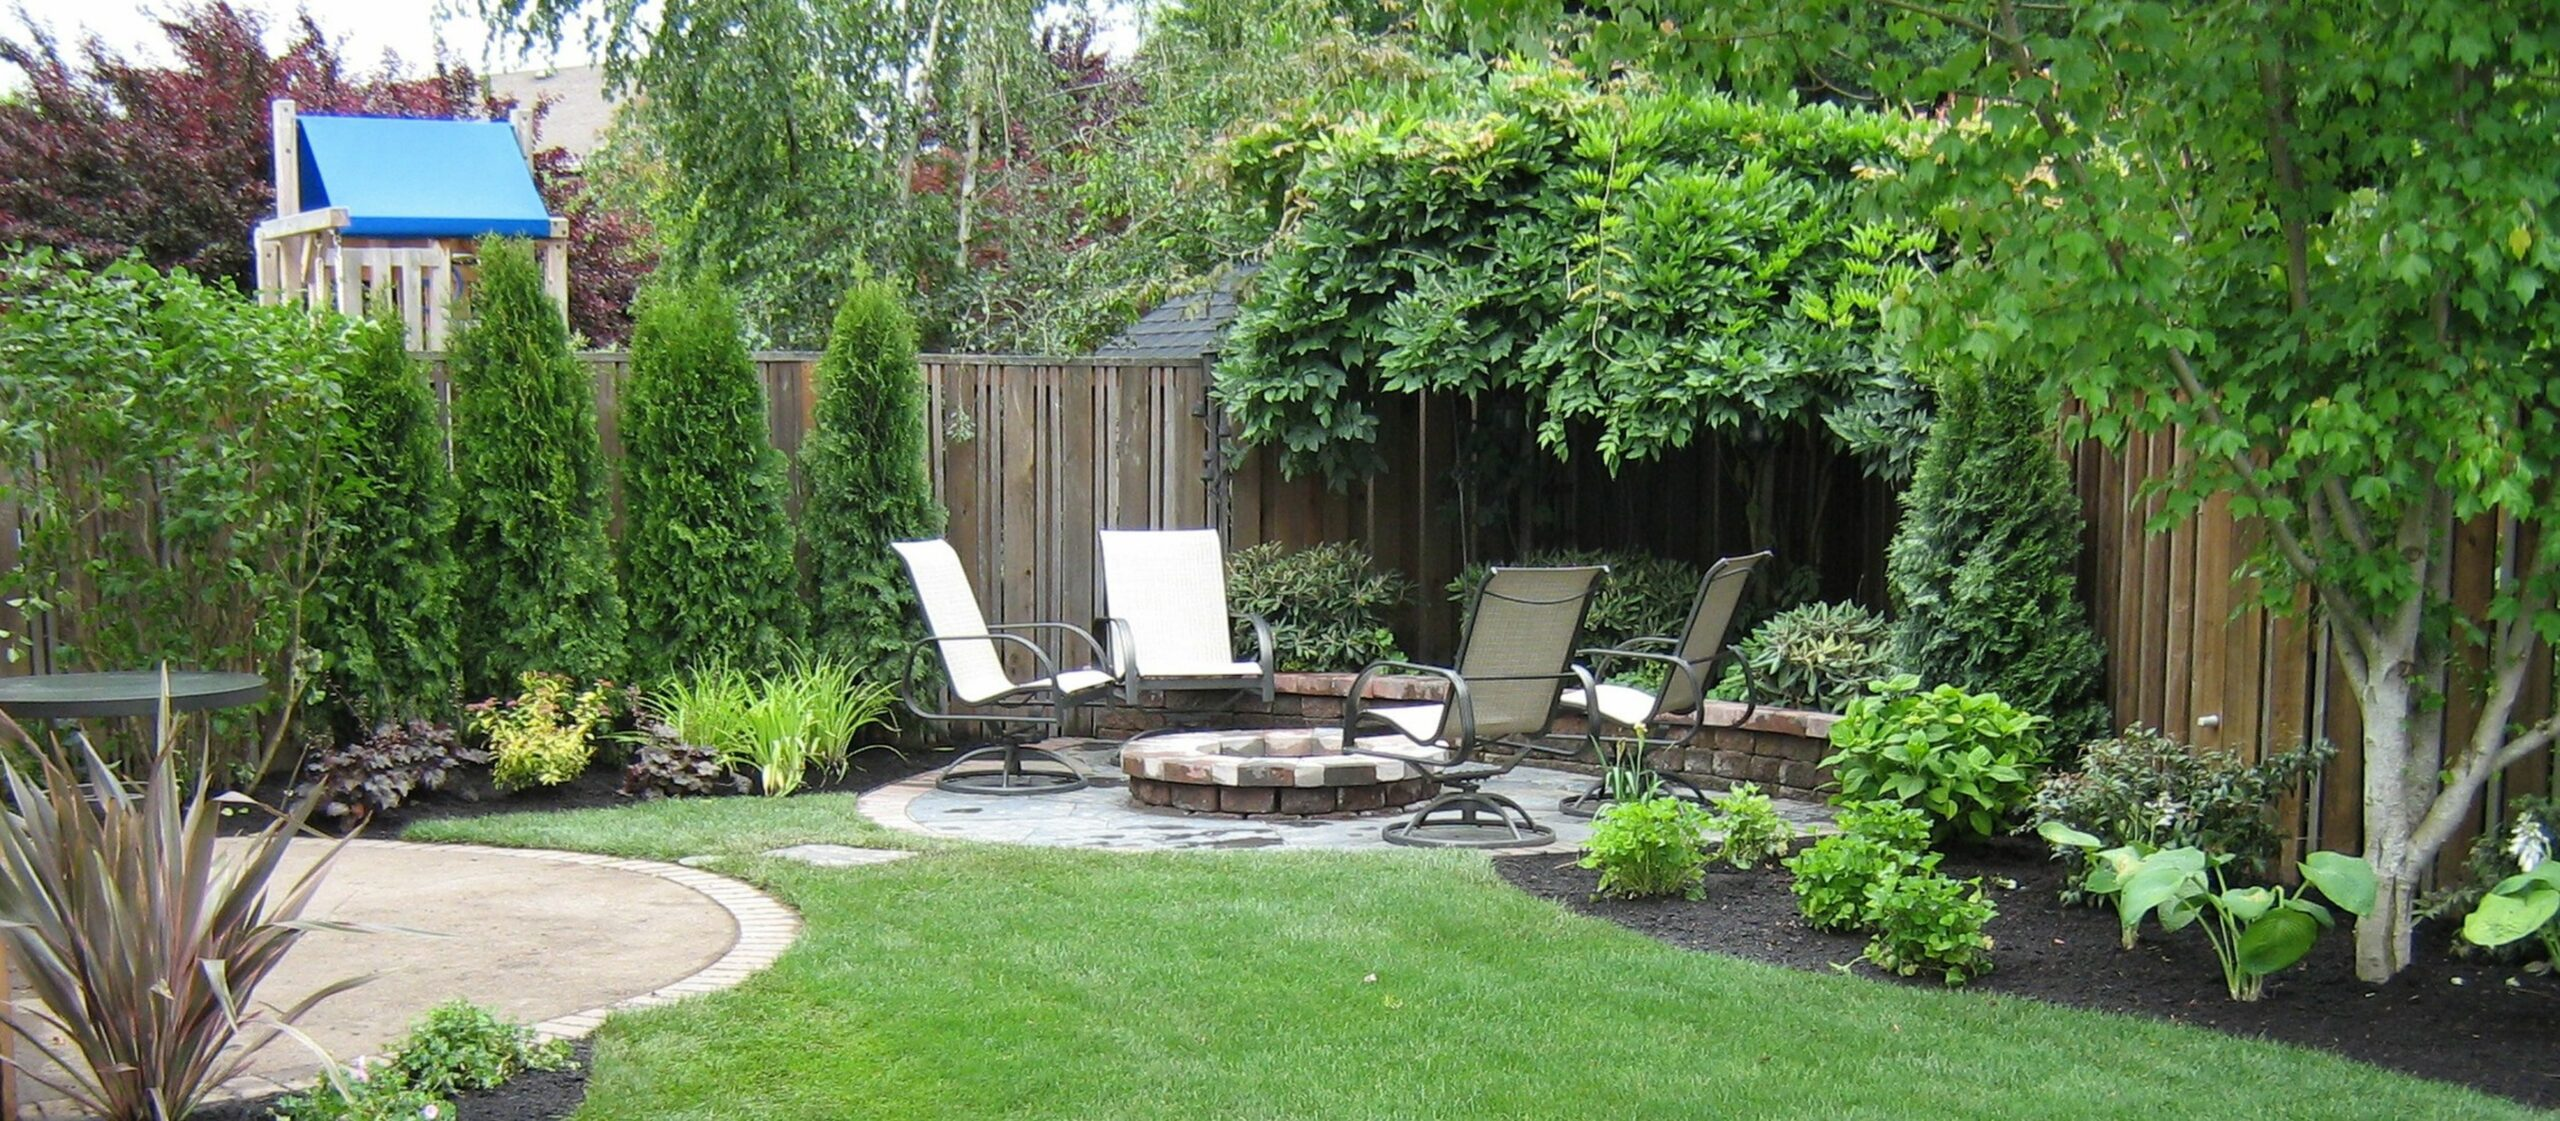 Small yard landscaping ideas georgia southern (With images ...